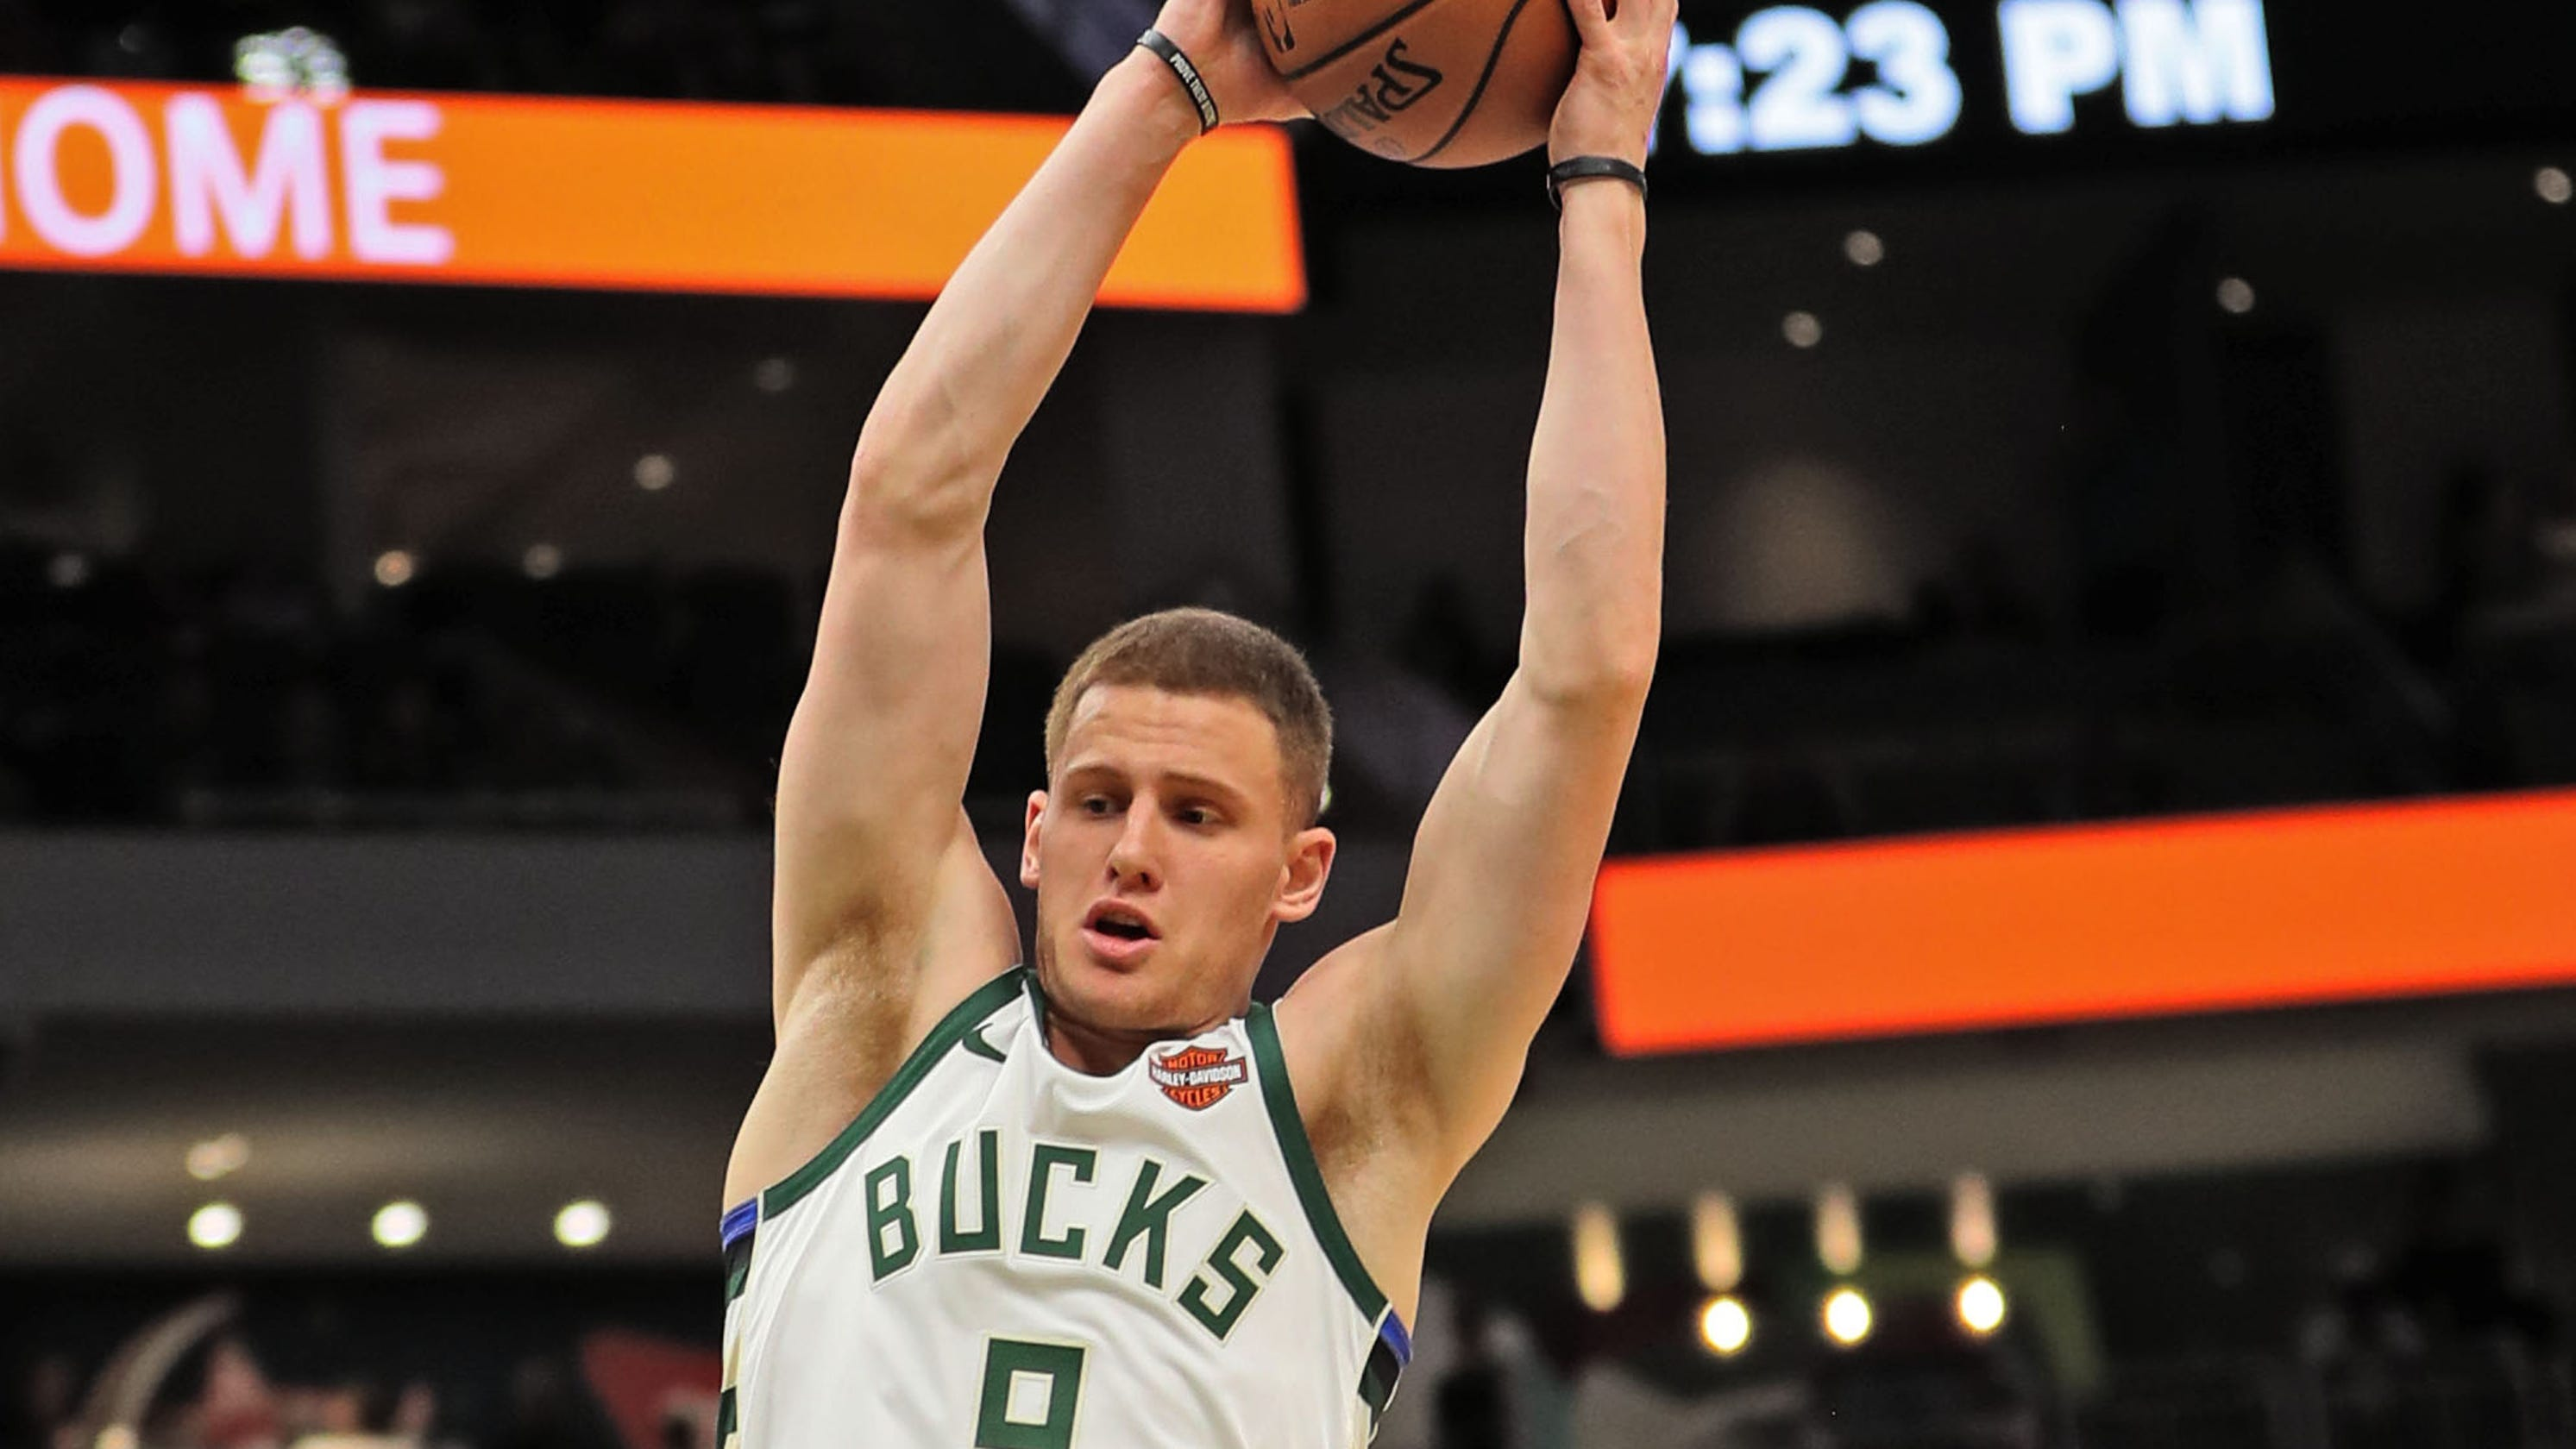 """66d20fcb1aa Sidelined for now, Salesianum's DiVincenzo """"living the dream"""" in NBA"""